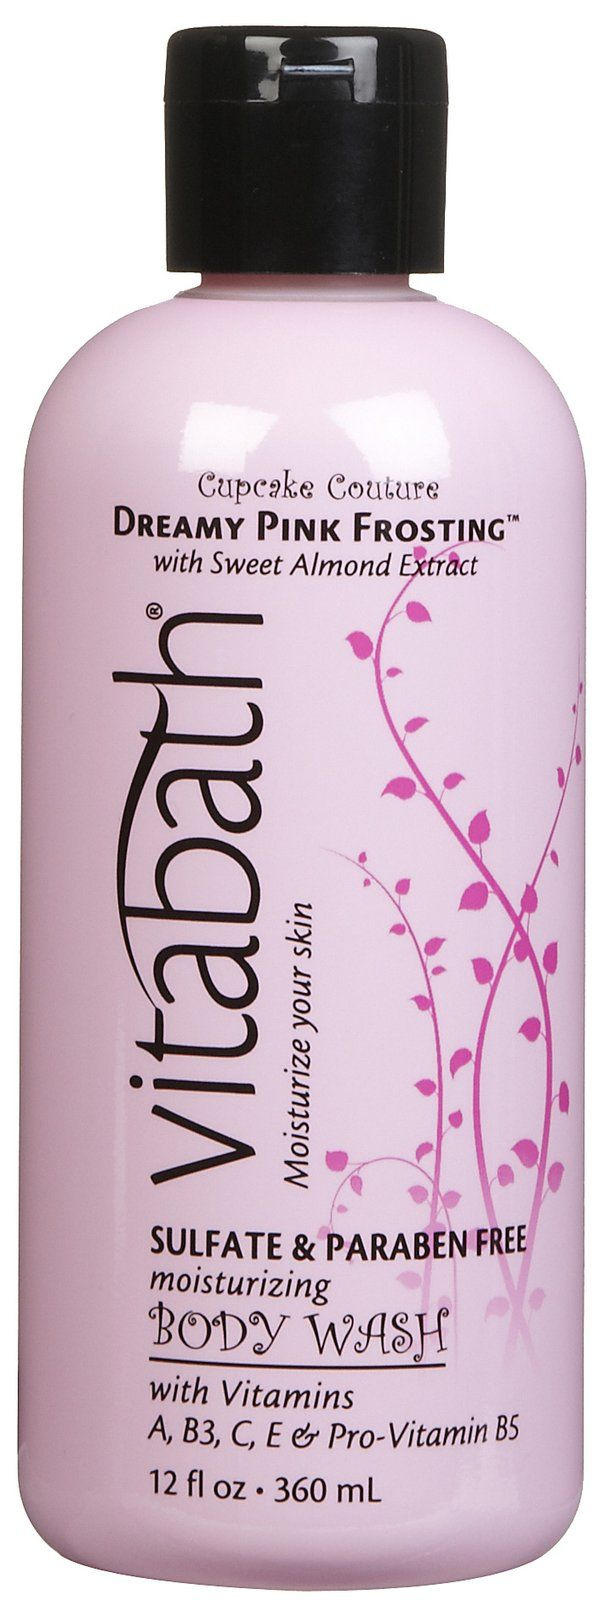 Vitabath Cupcake Collection Body Wash, Dreamy Pink Frosting ...